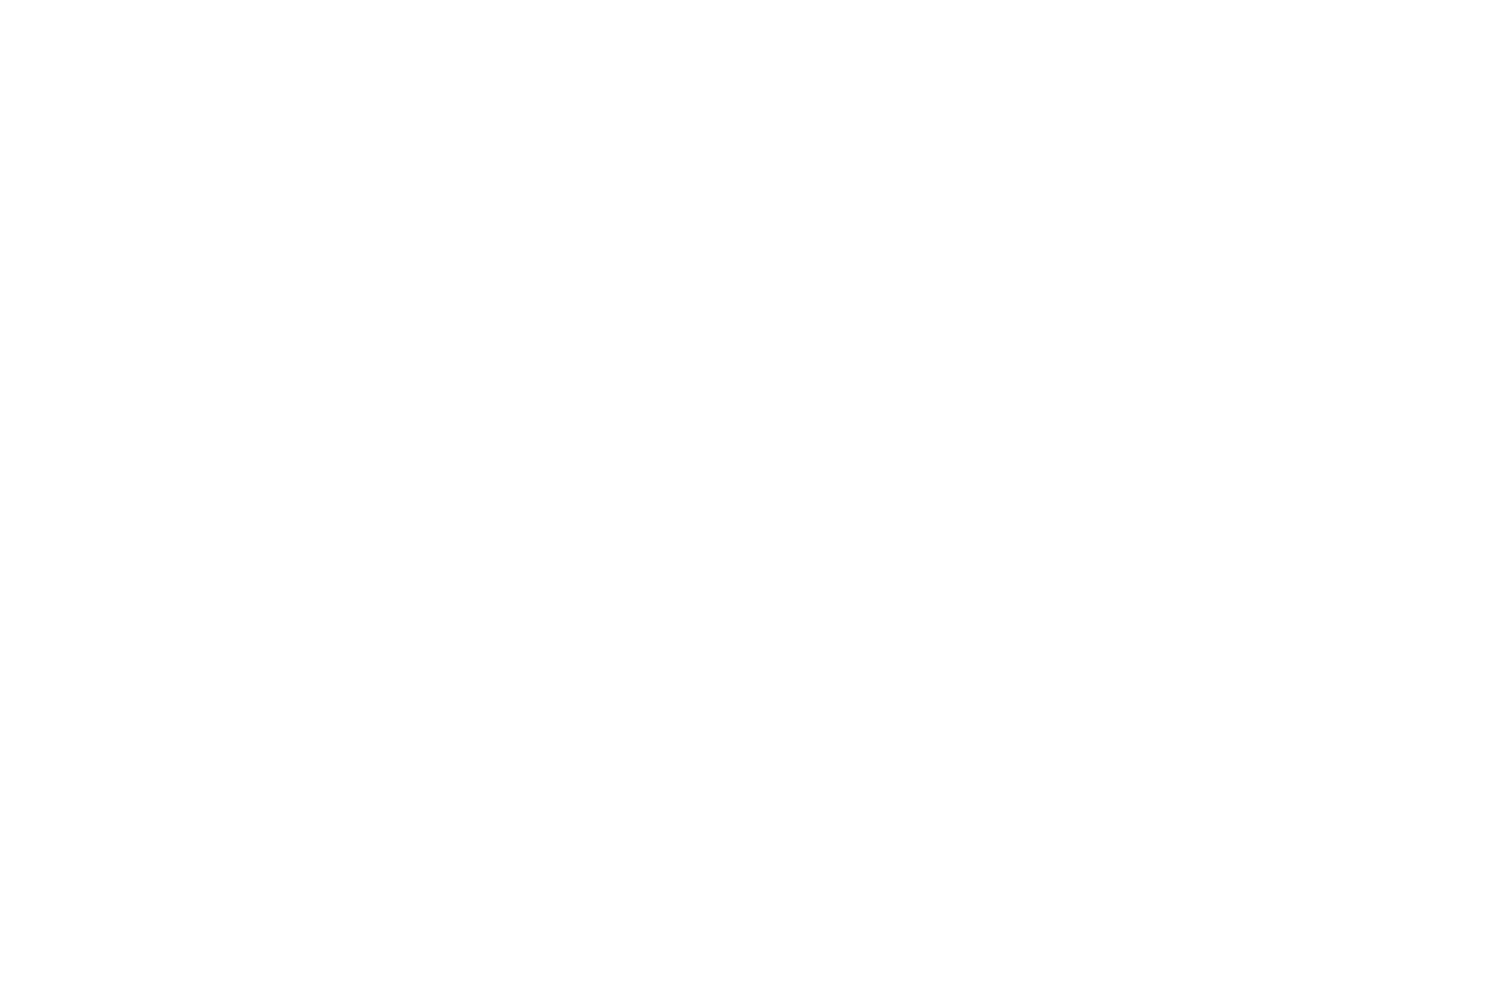 Stephanie Vasiliadis Photography